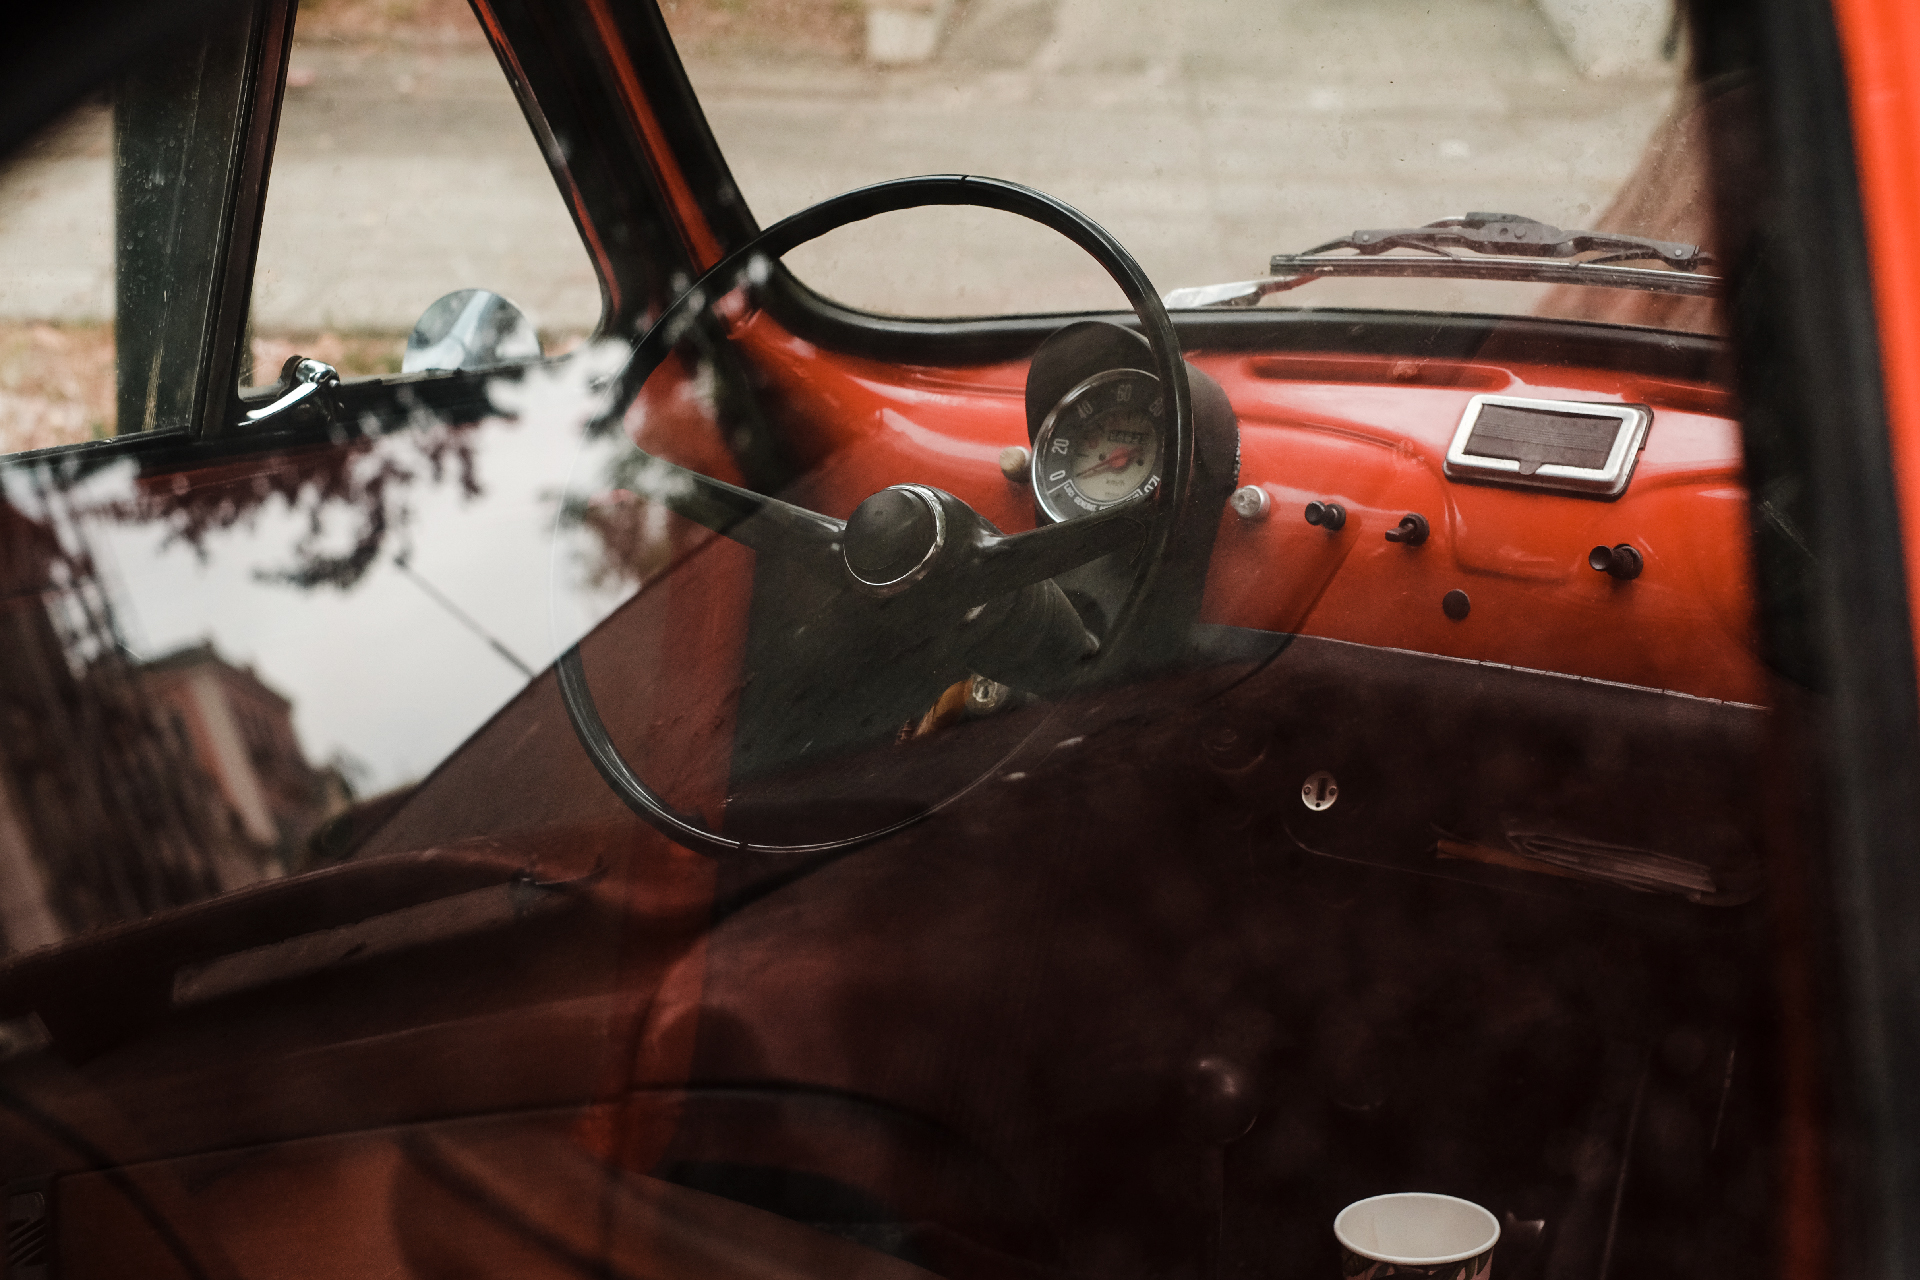 Inside of a red vintage car, weekend in Corfu